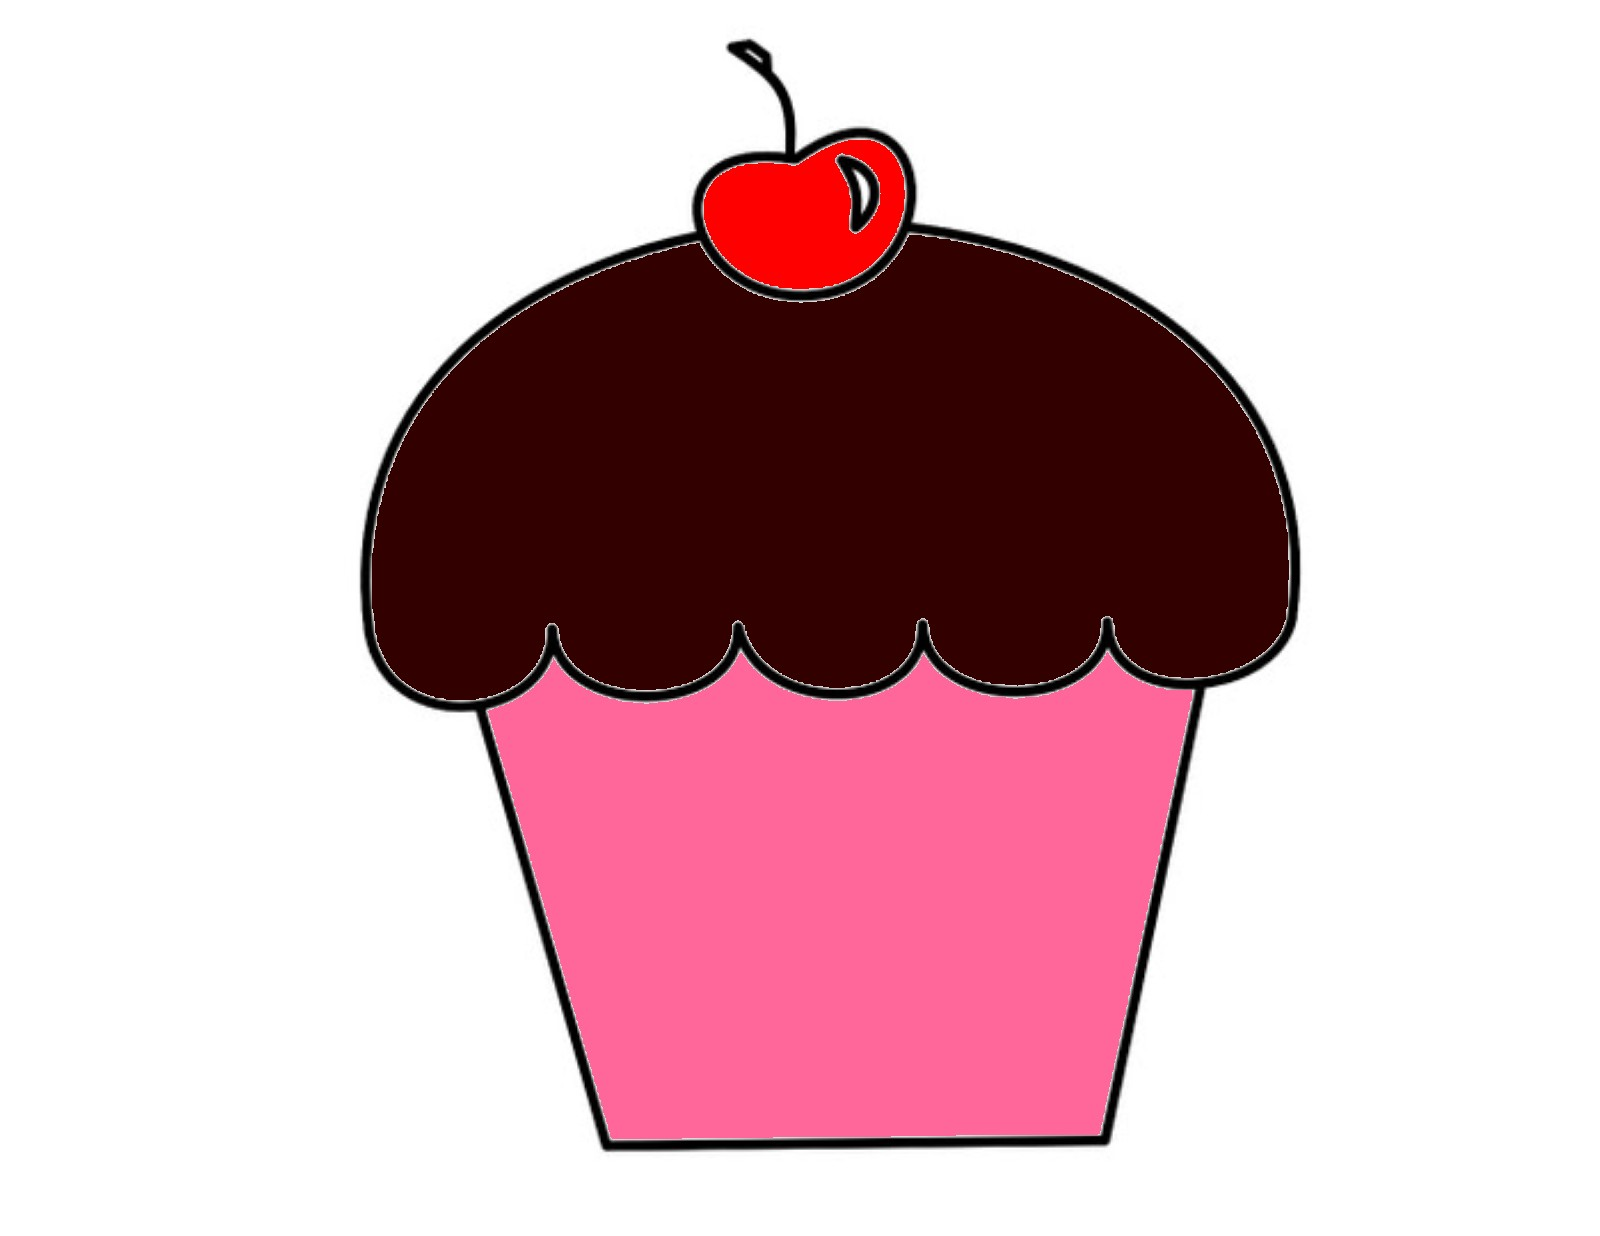 Cupcake   Free Images At Clker Com   Vector Clip Art Online Royalty